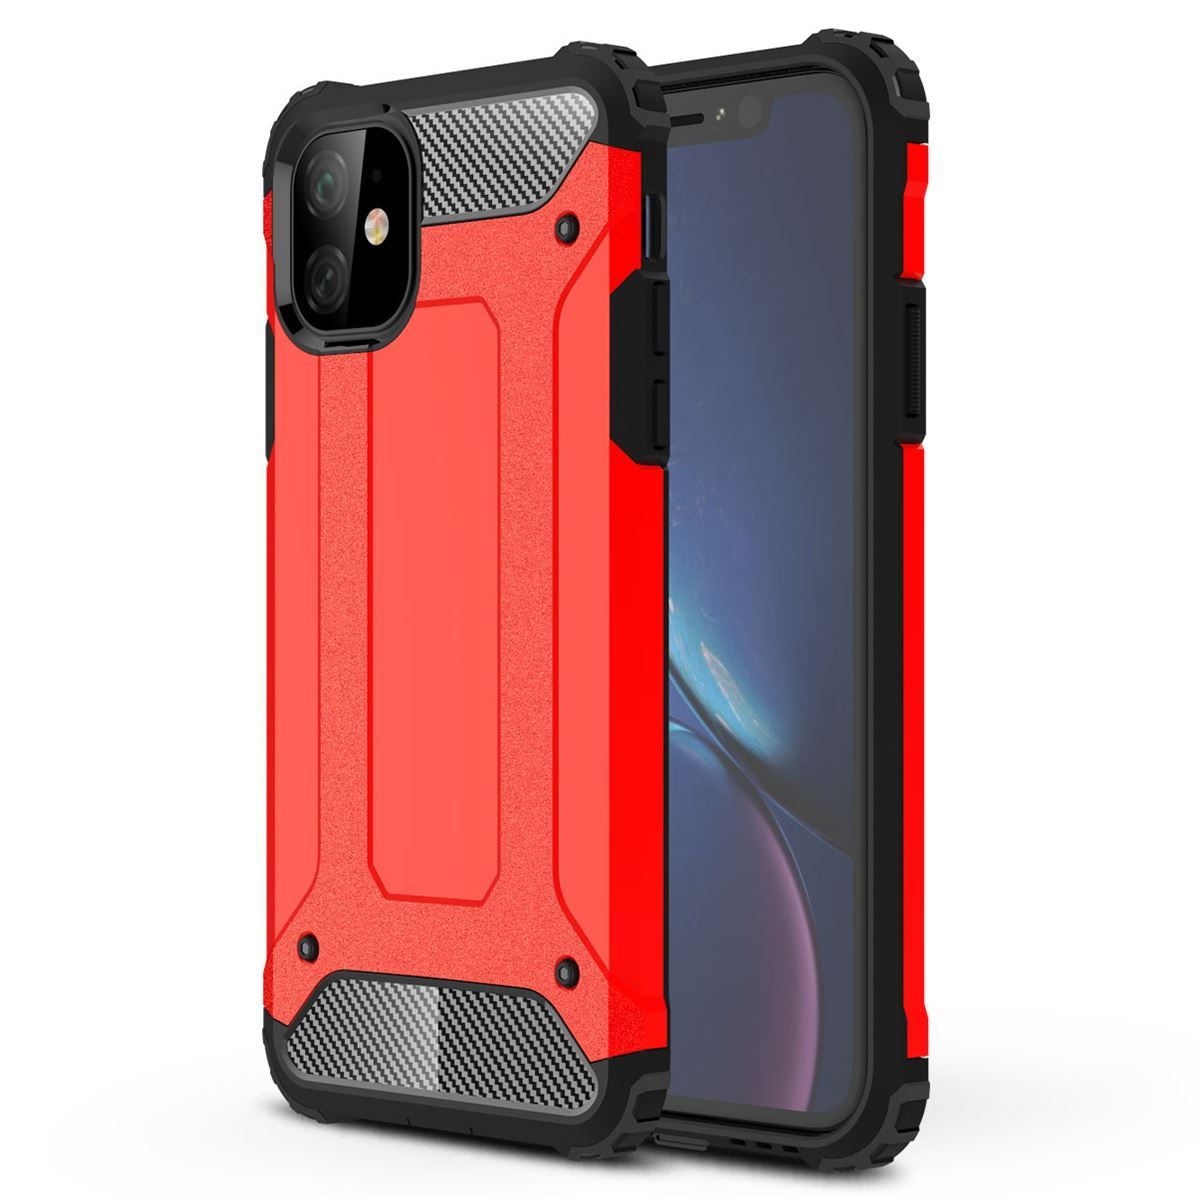 iPhone 11 Case Shockproof Protective Cover - Red